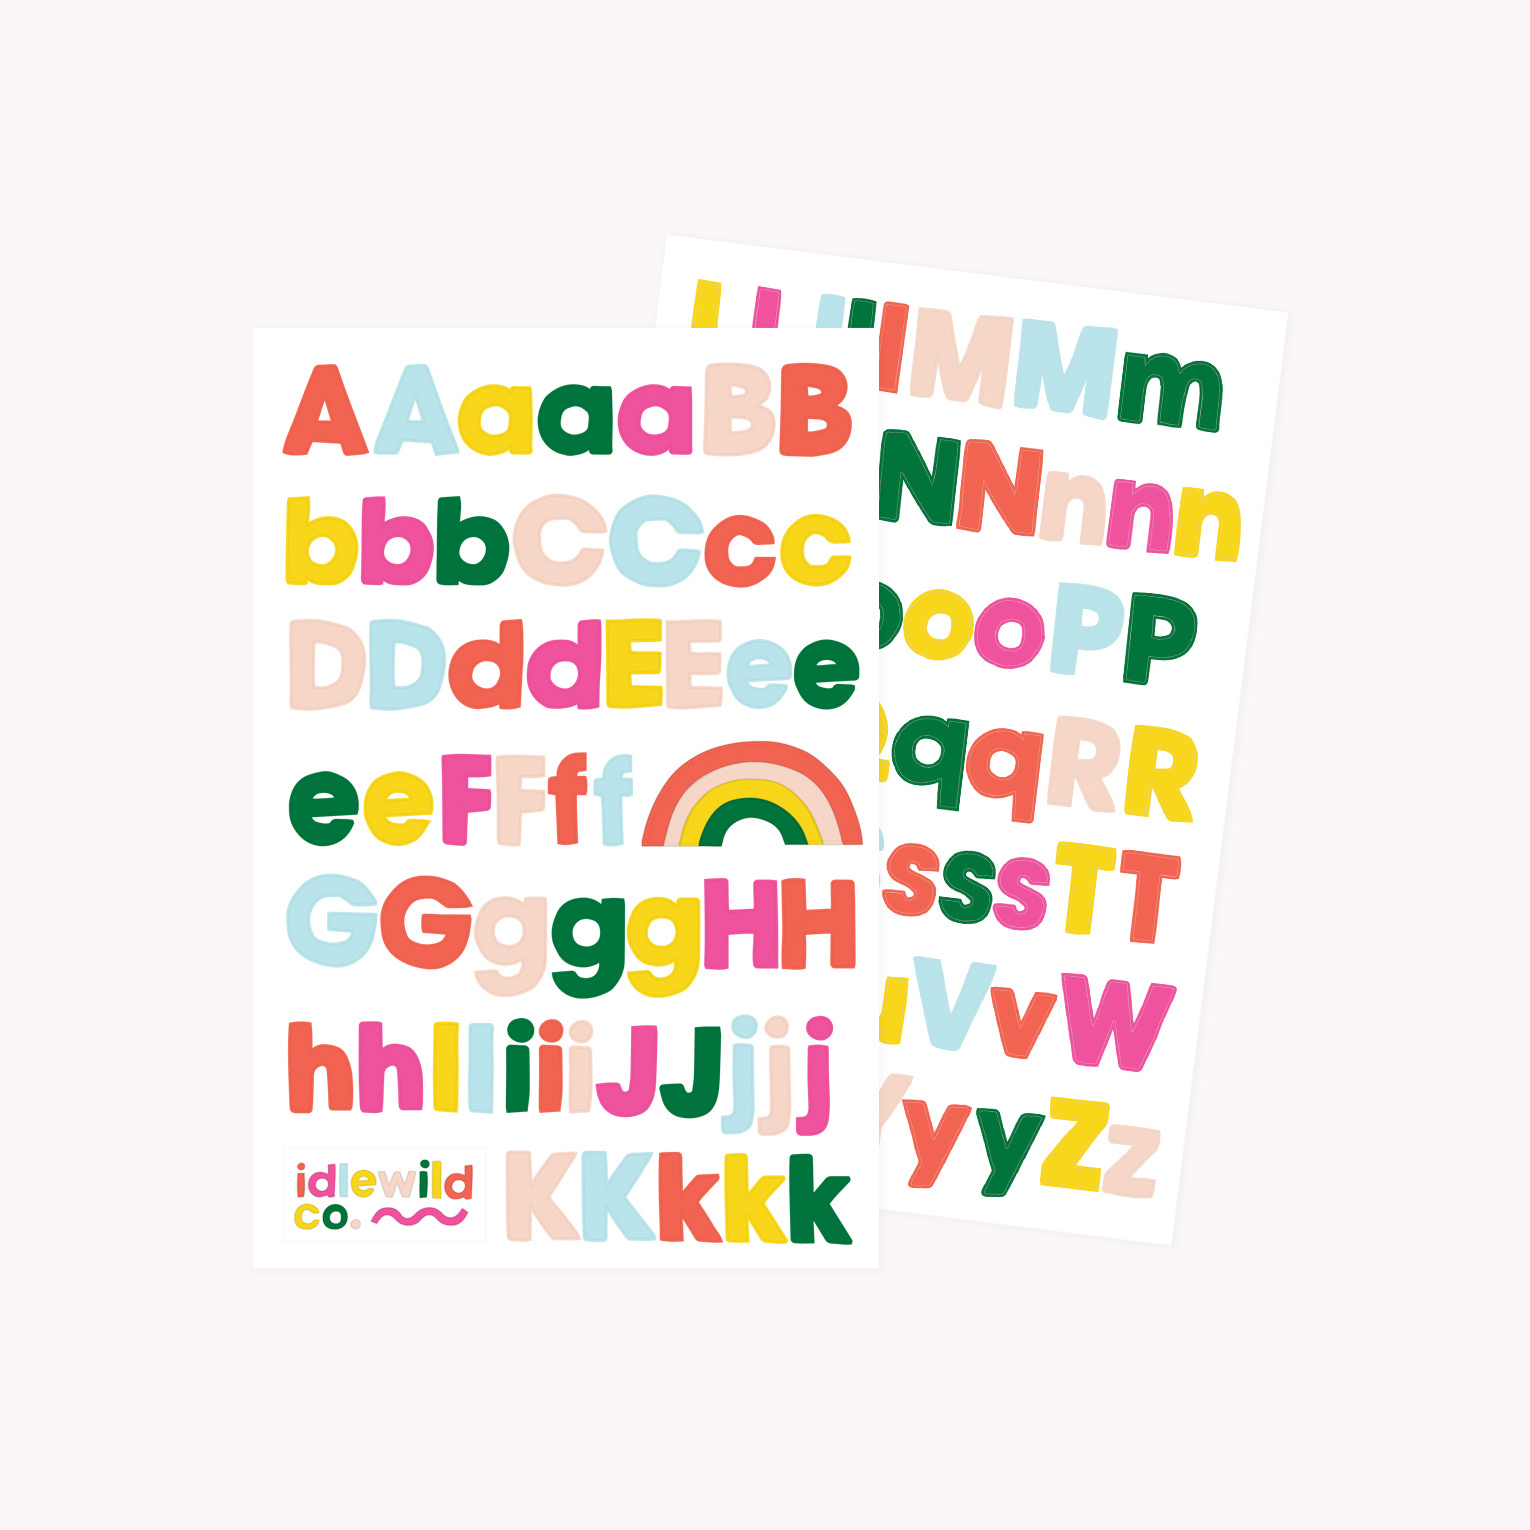 Idlewild Co - ID Brights Alphabet Stickers (2 Sheets)